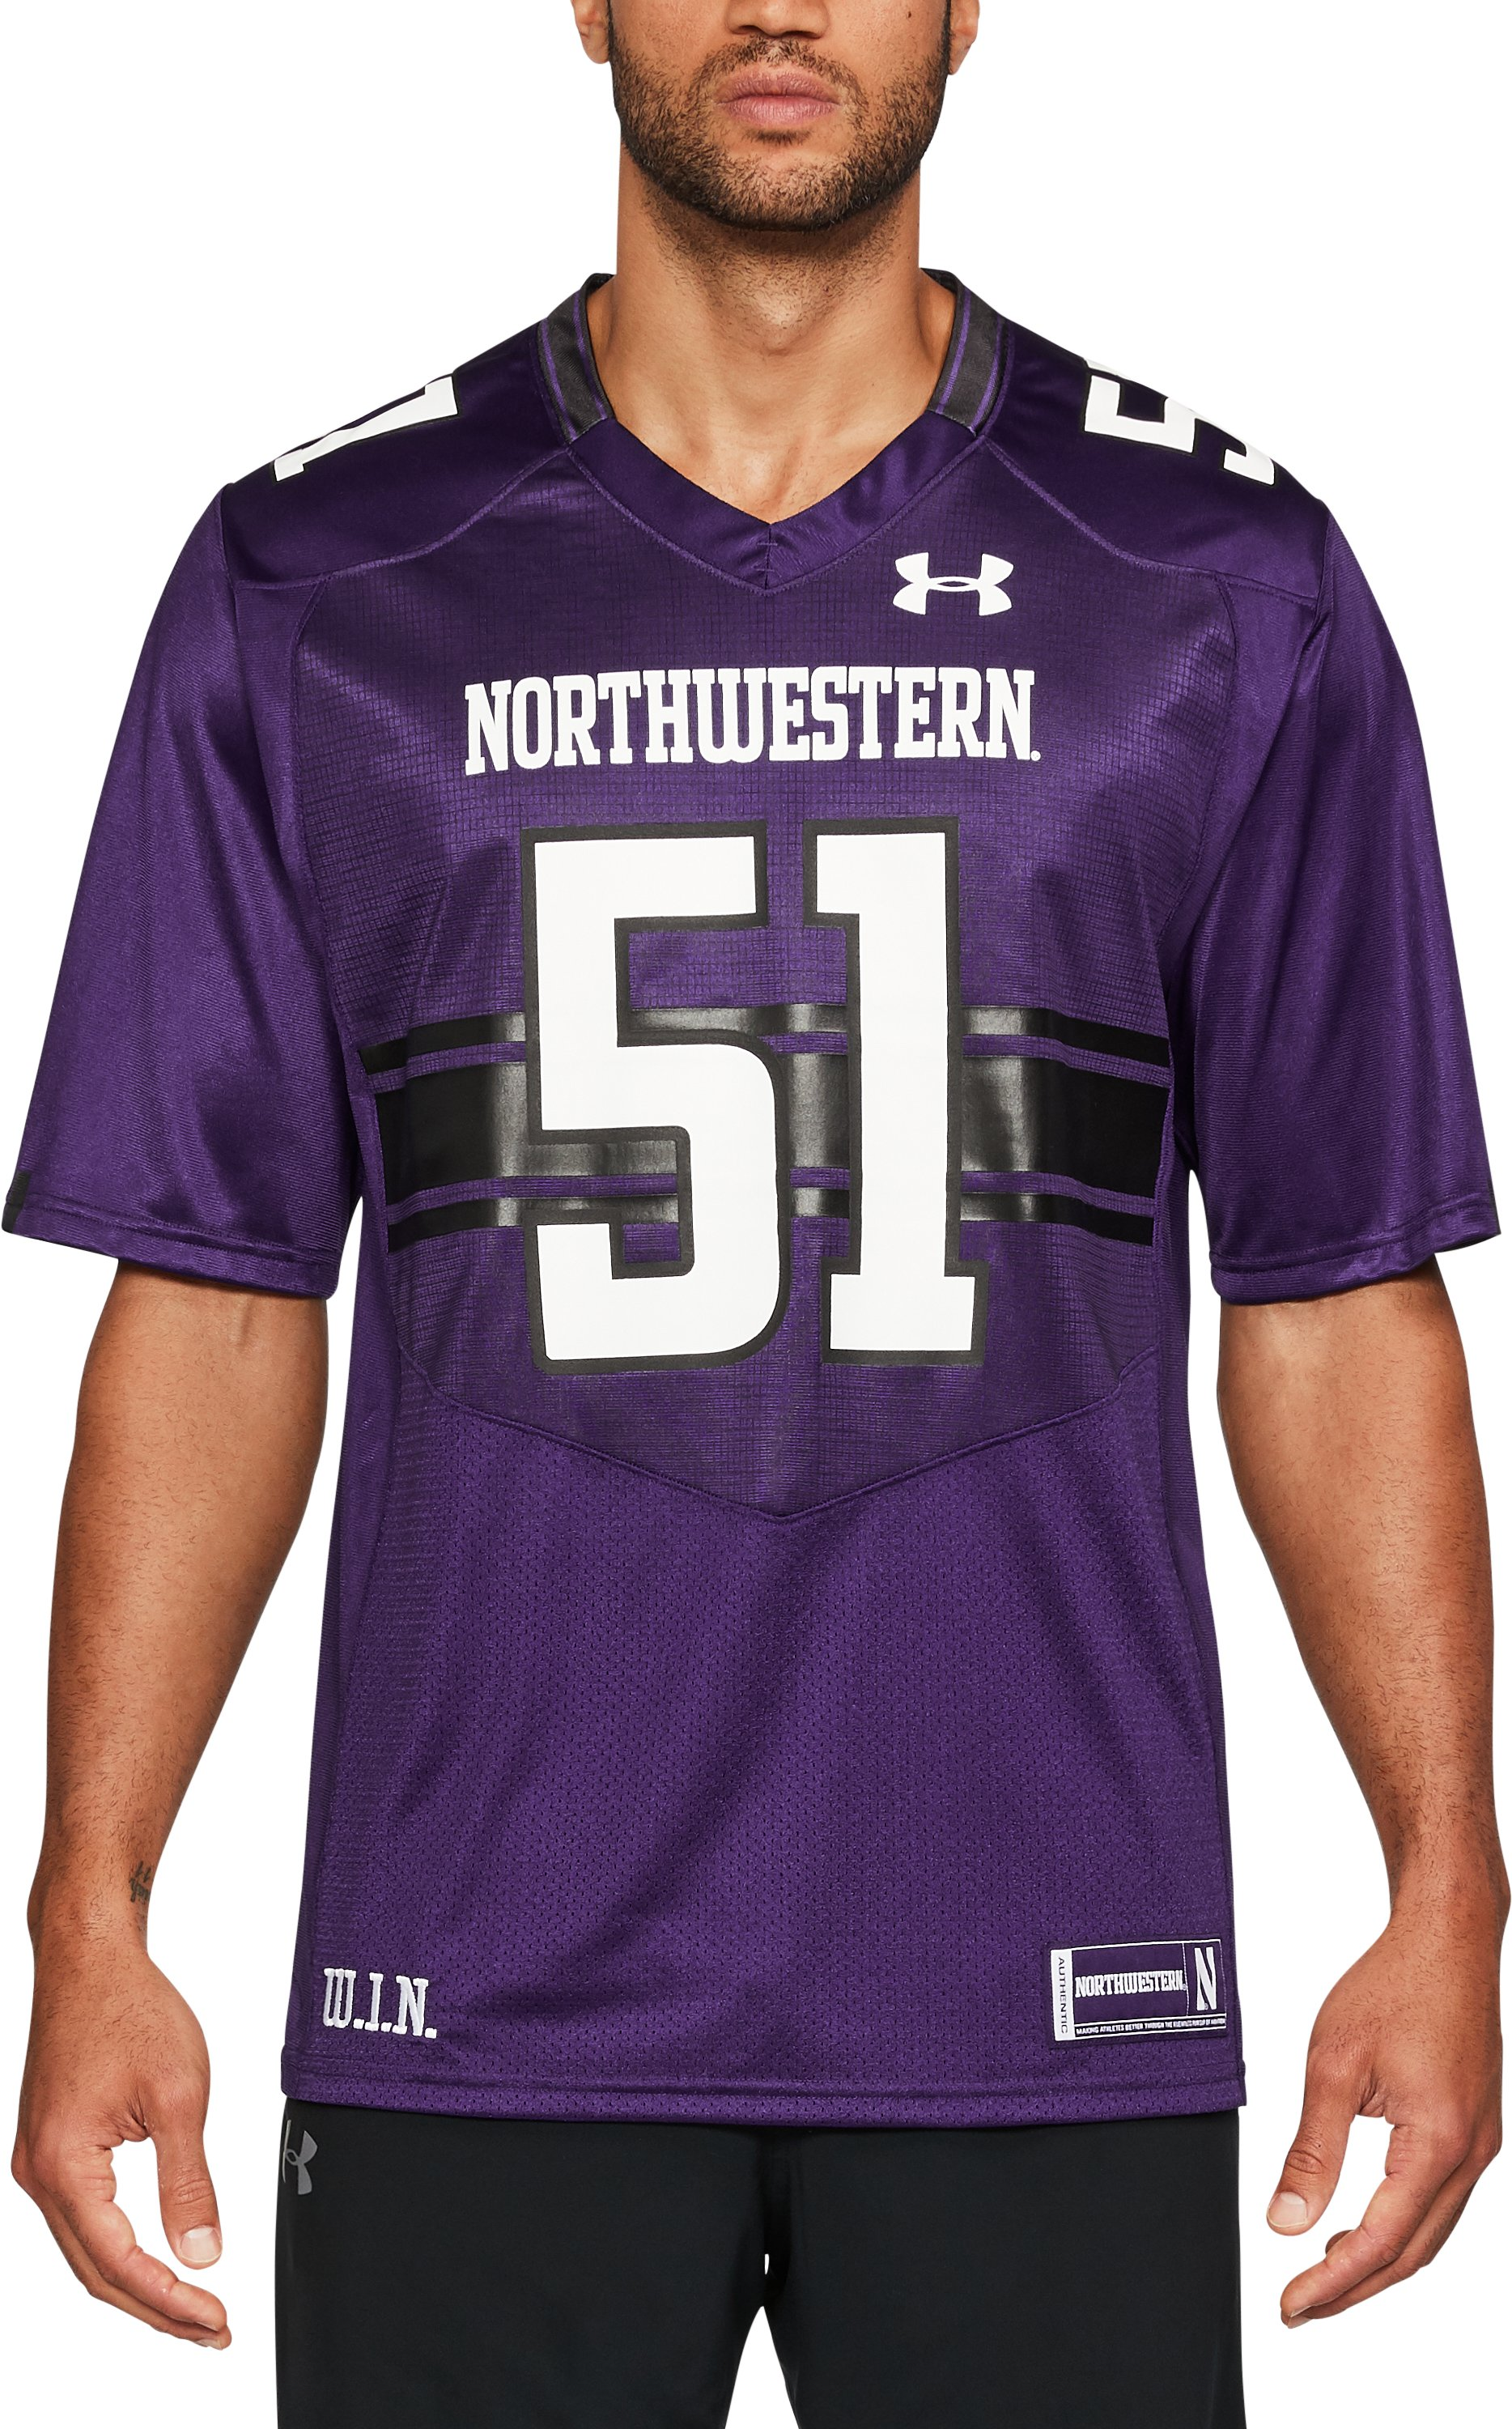 Men's Northwestern Replica Jersey, Purple